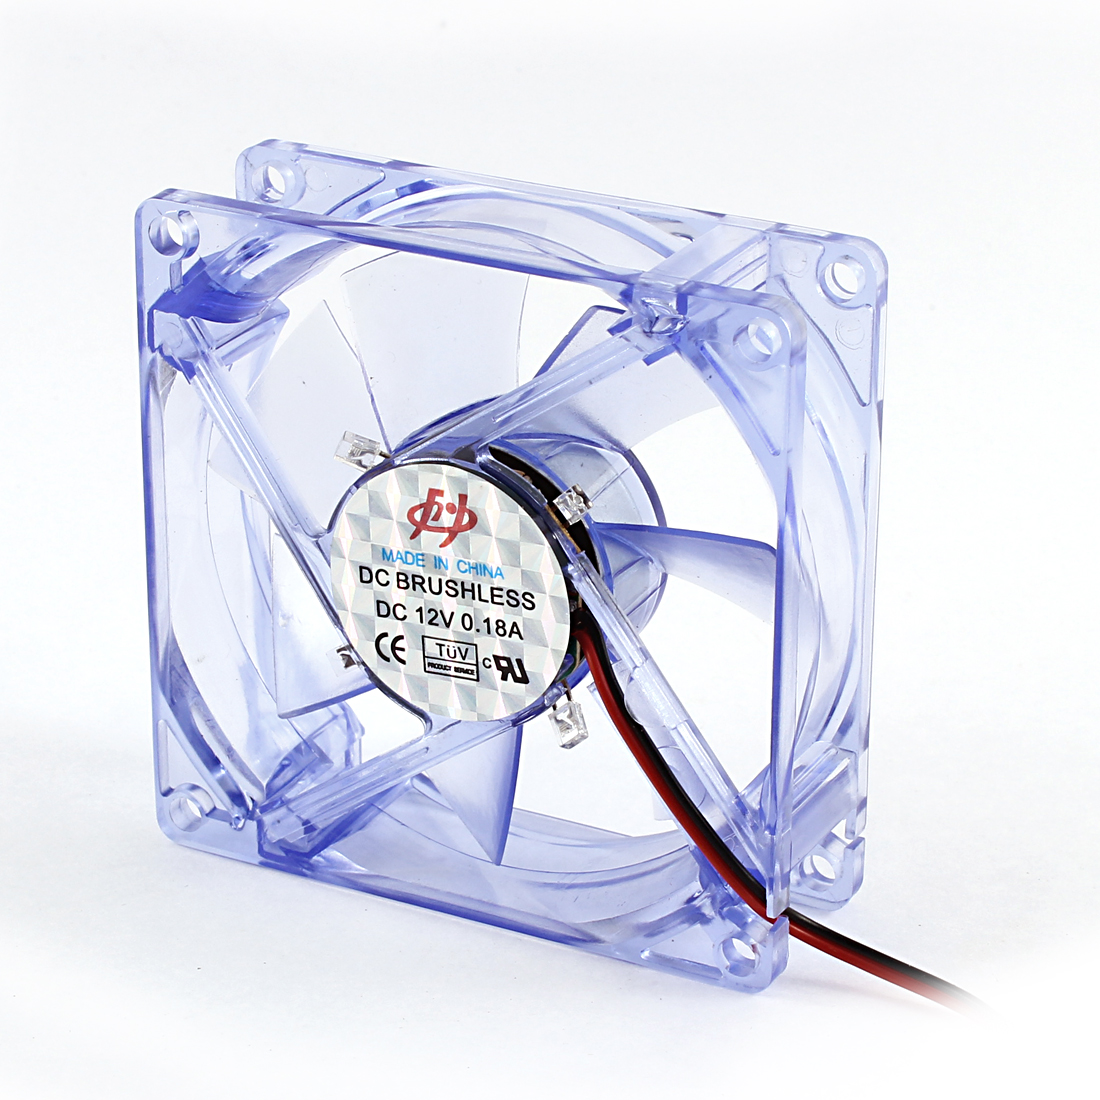 Clear Blue 80mm Square DC Brushless Computer Cooler Cooling Fan 12V 0.18A